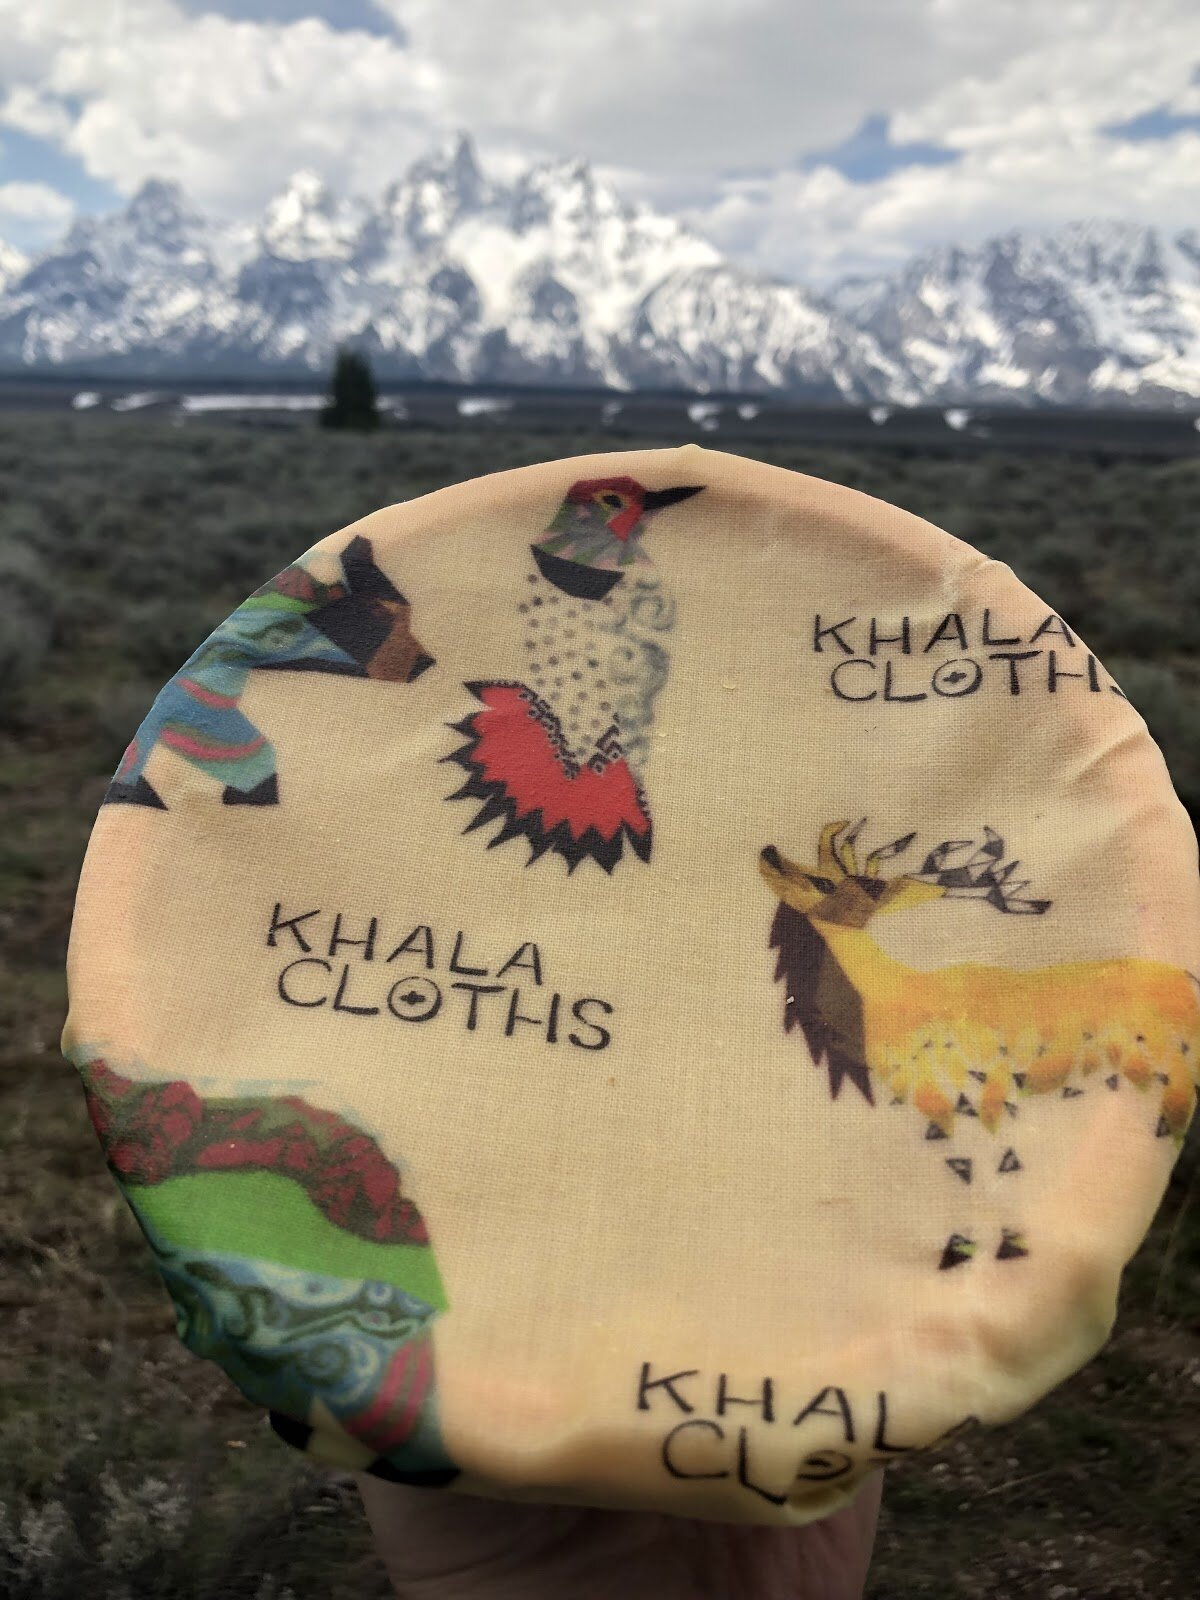 Partnership of 2019: Khala & Company + National Parks Conservation Association